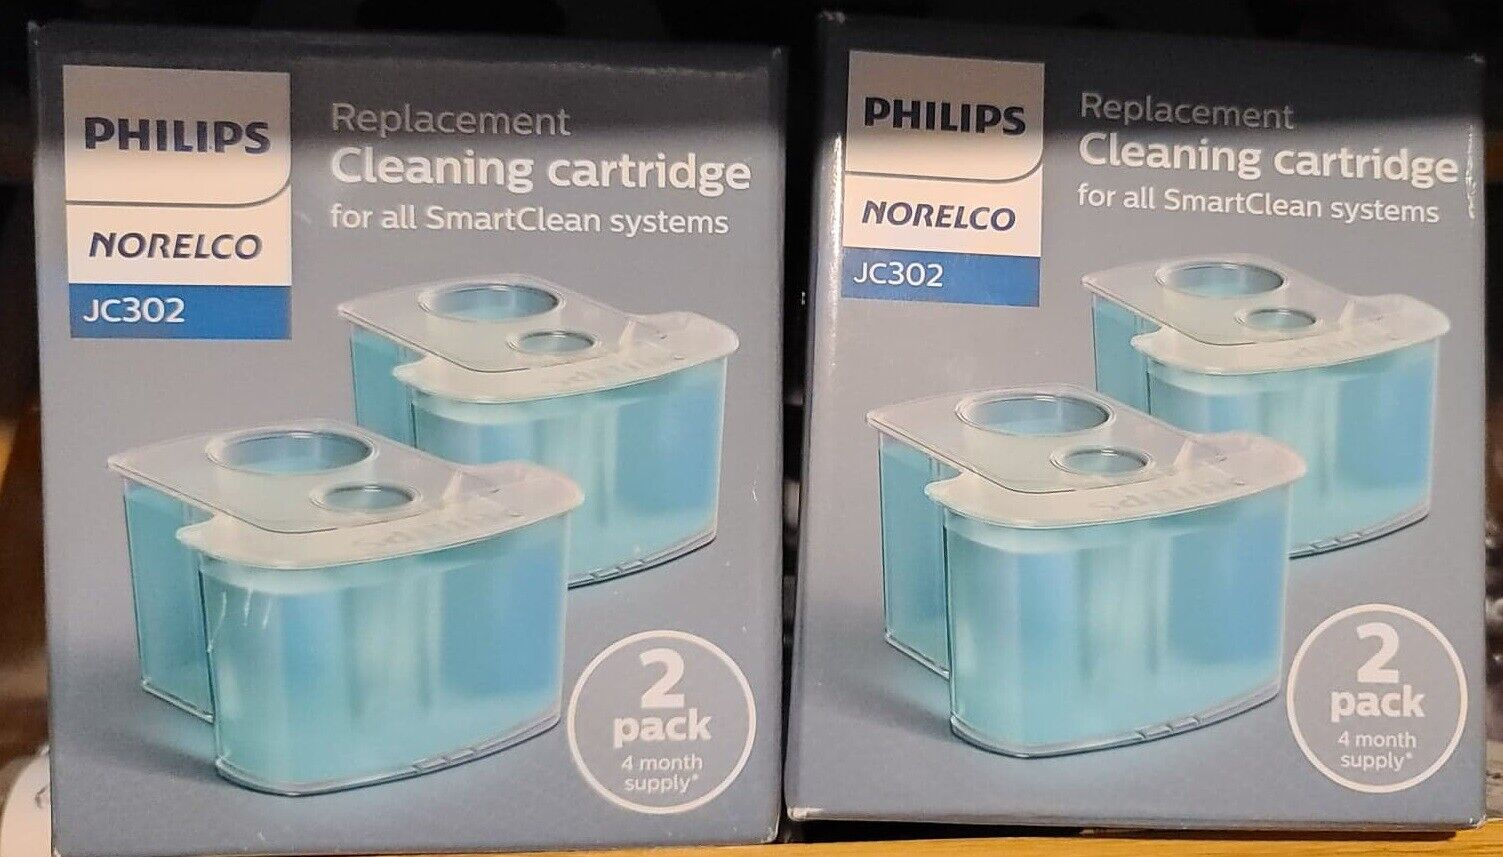 Philips Norelco Smartclean Replacement Cleaning Cartridge JC302 2 Count  - $14.99